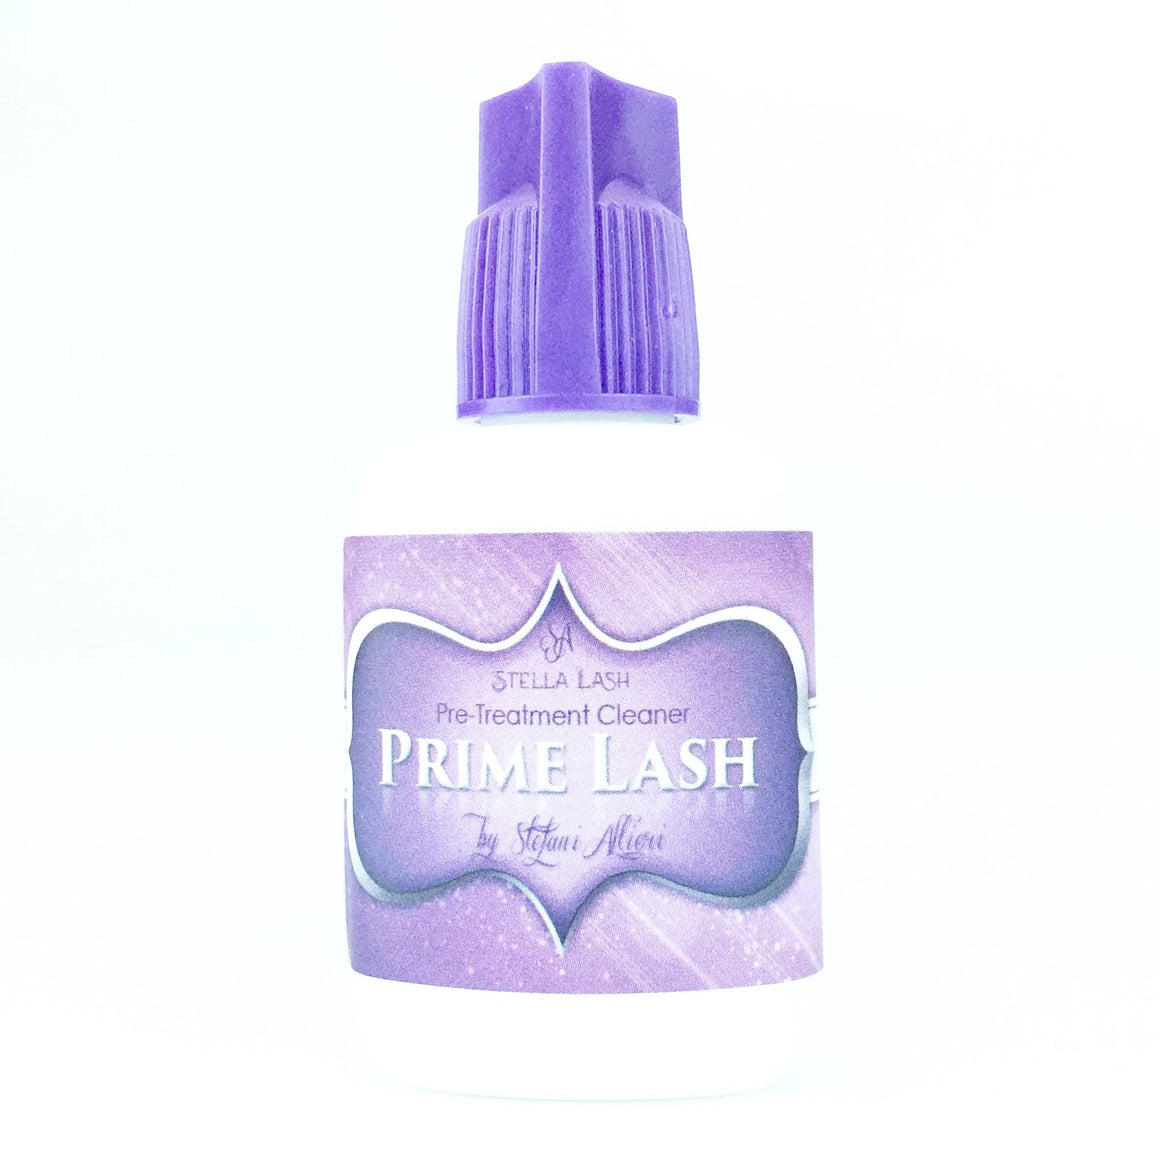 PRIME LASH  - Lash Extension PRIMER  15ml - The Lash Shop @ StellaLash